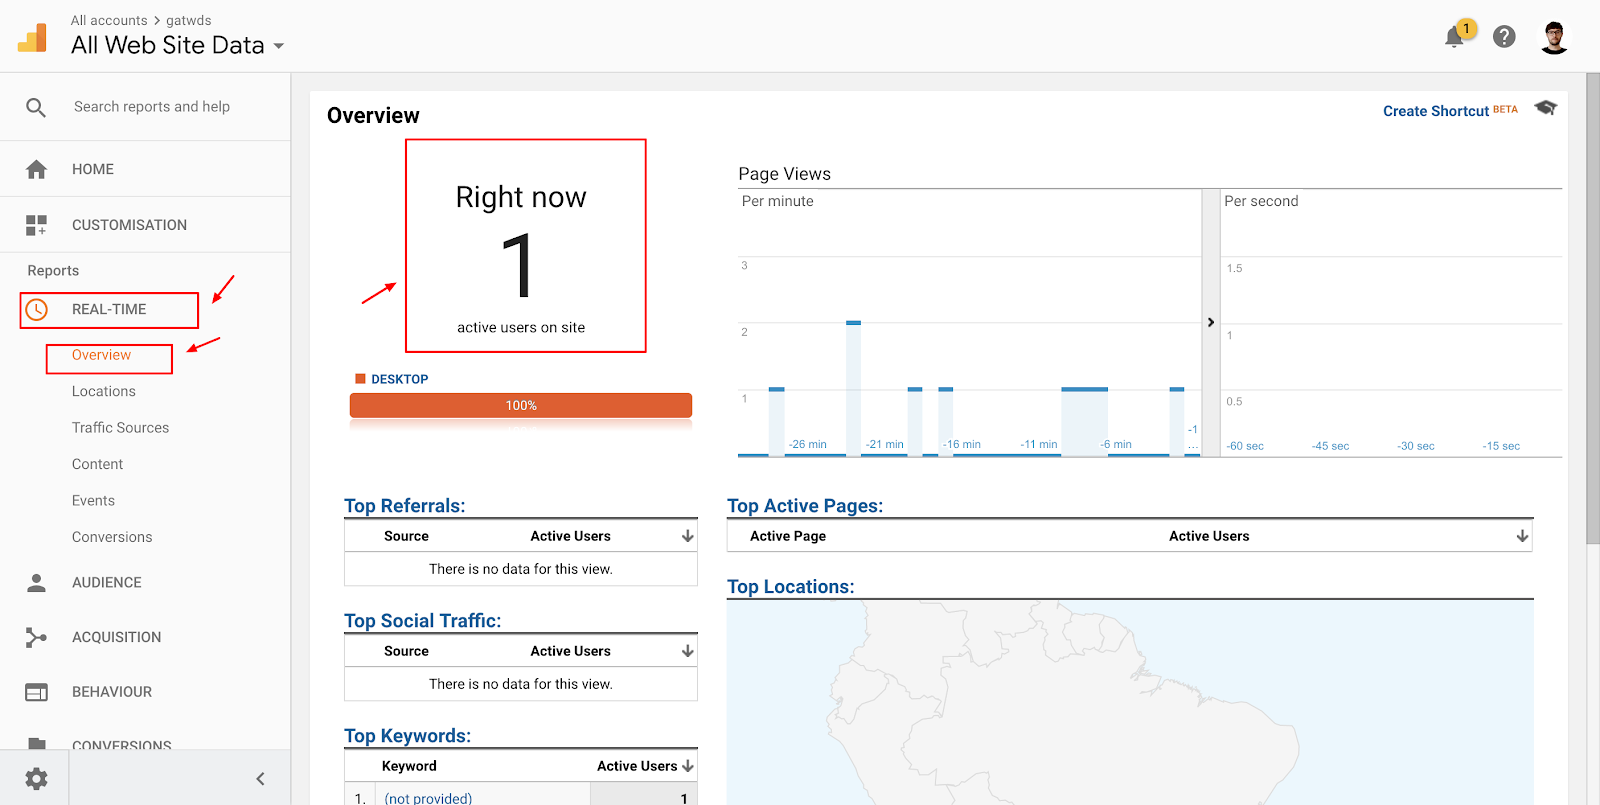 Screenshot showing a live visitors page on the Analytics dashboard